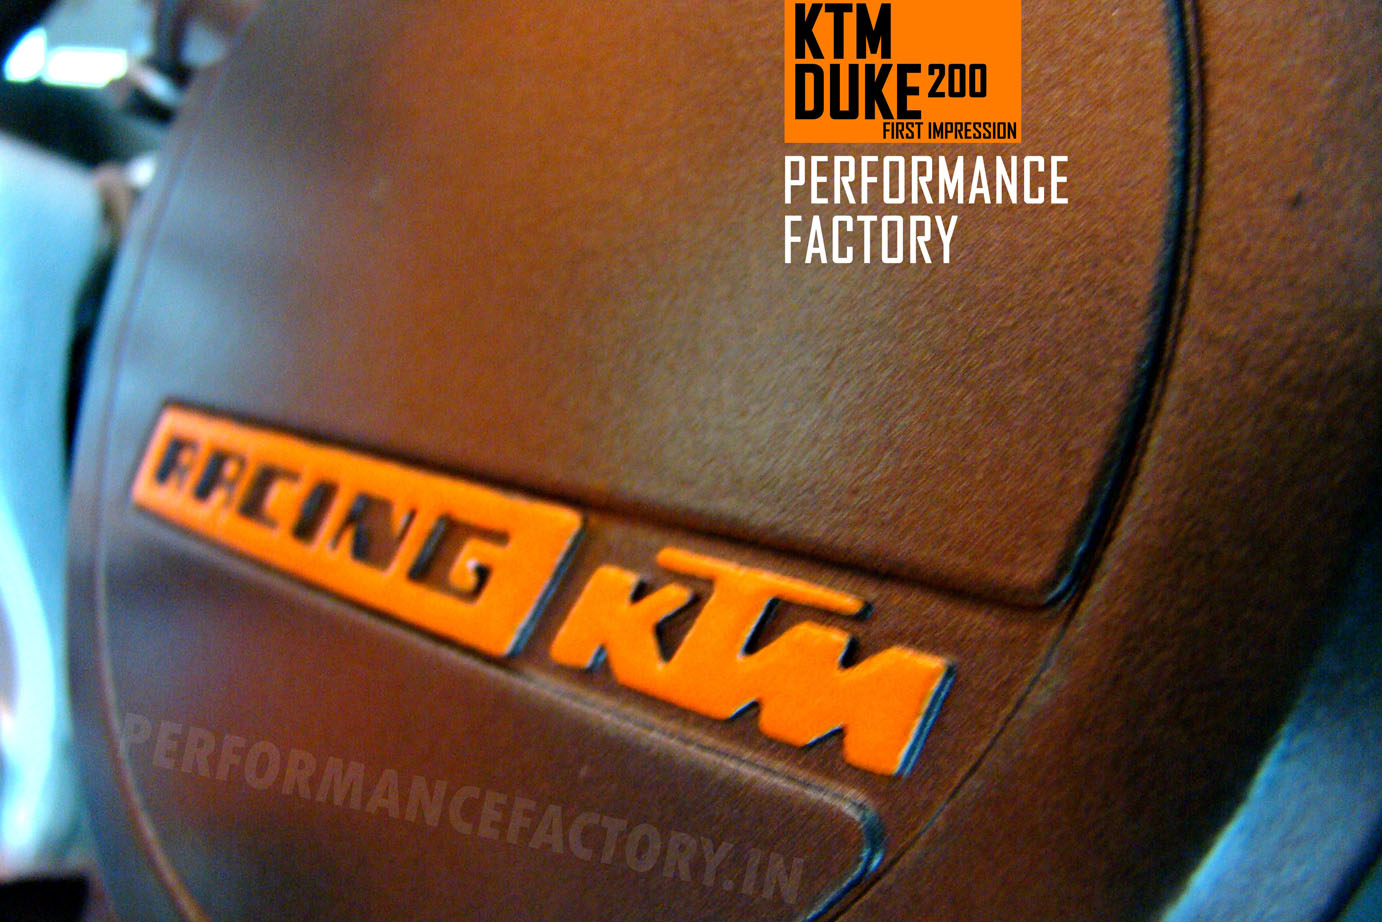 ktm duke 200 first impression by performance factory